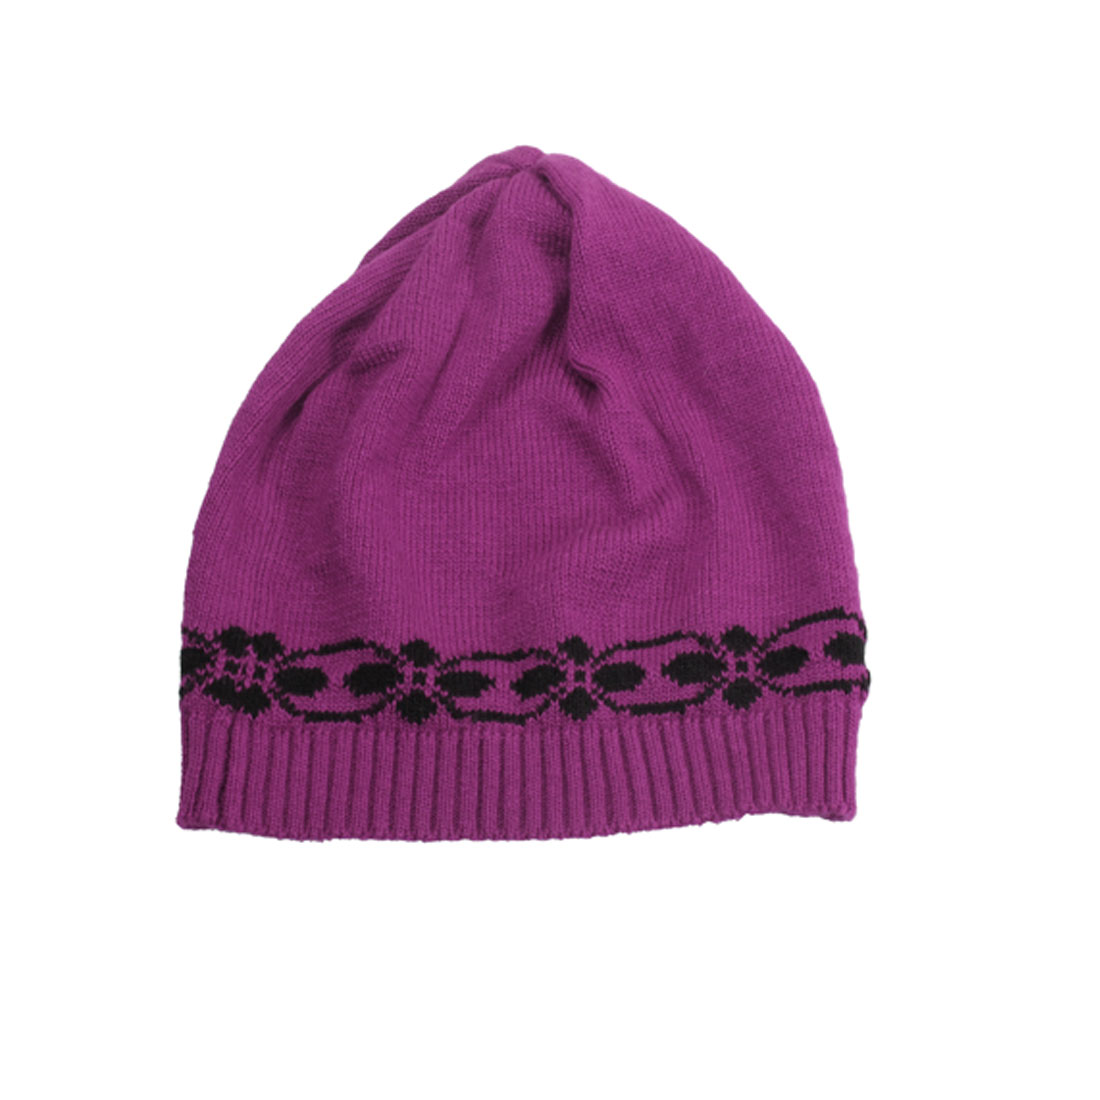 Women Winter Floral Prints Fuchsia Ribbed Cuffs Ski Knit Beanie Hat Skull Cap